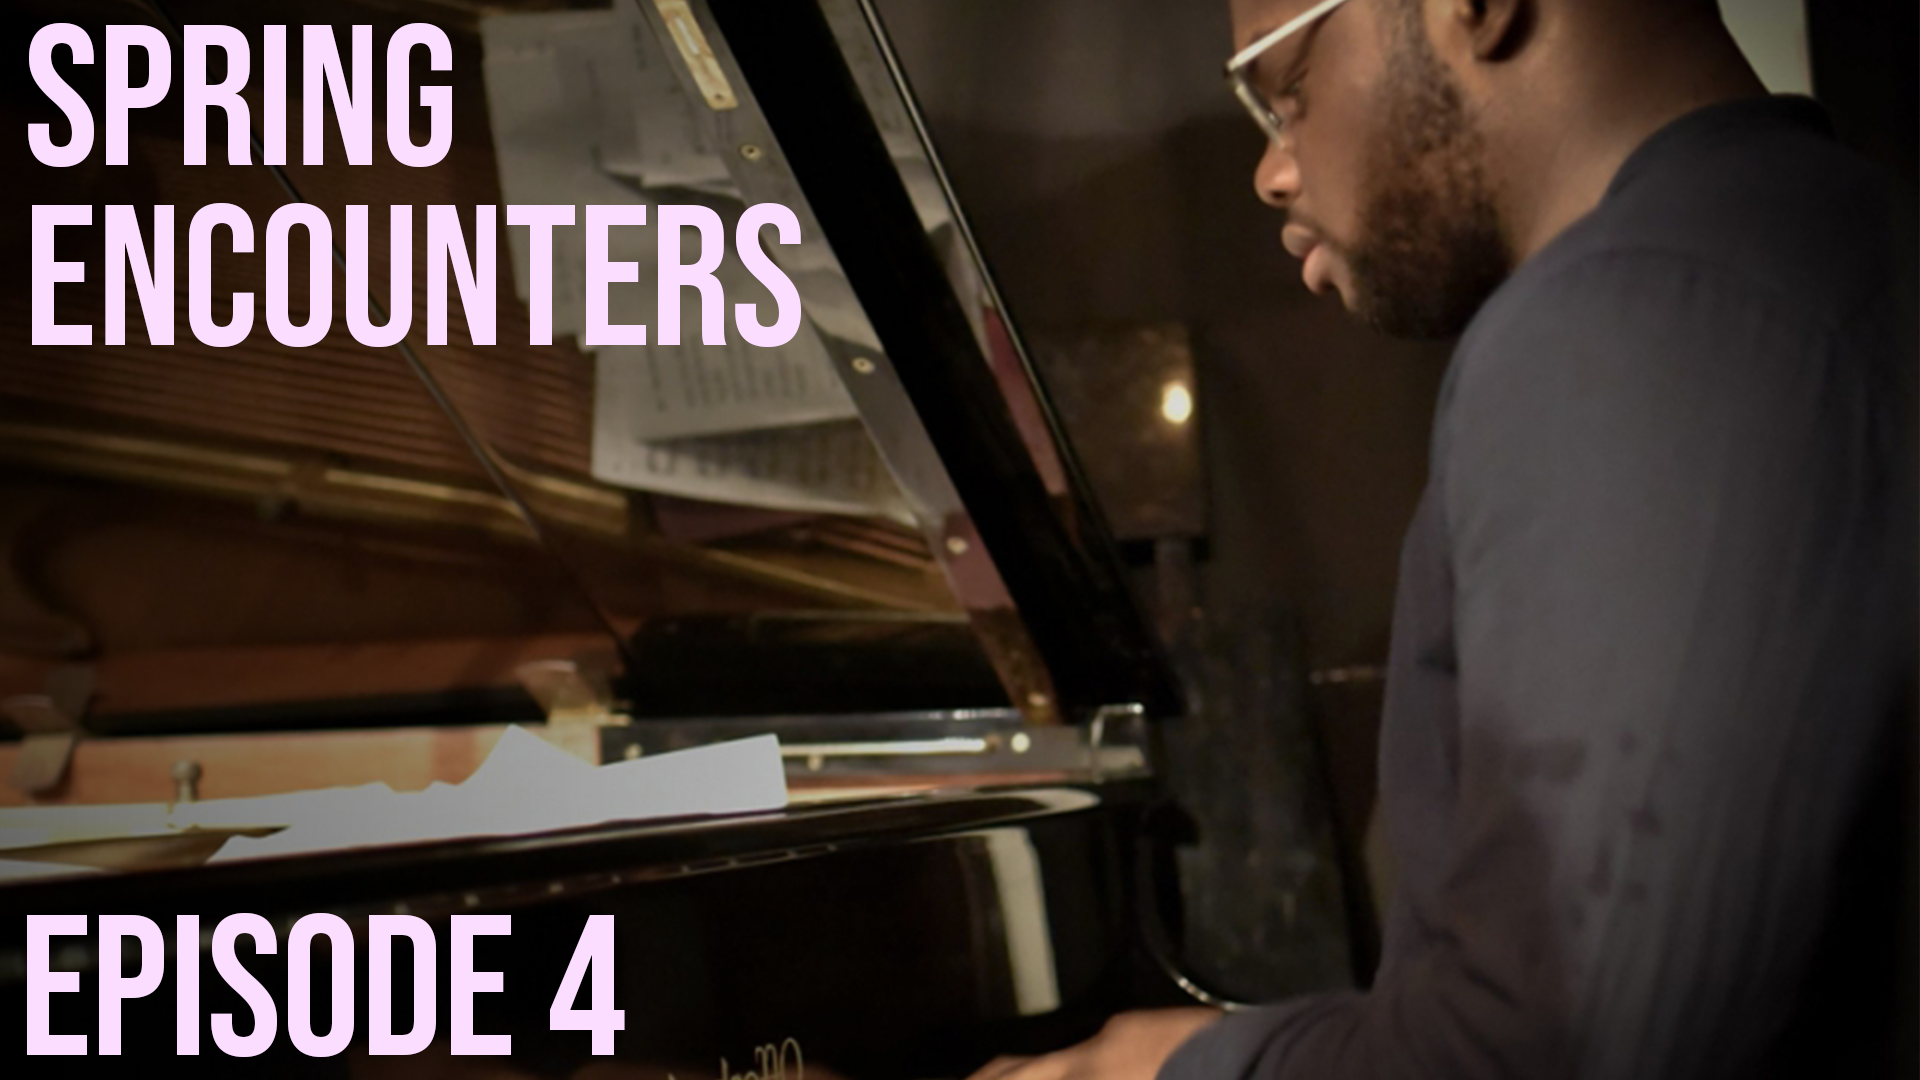 Photo for Spring Encounters: Episode 4 on ViewStub